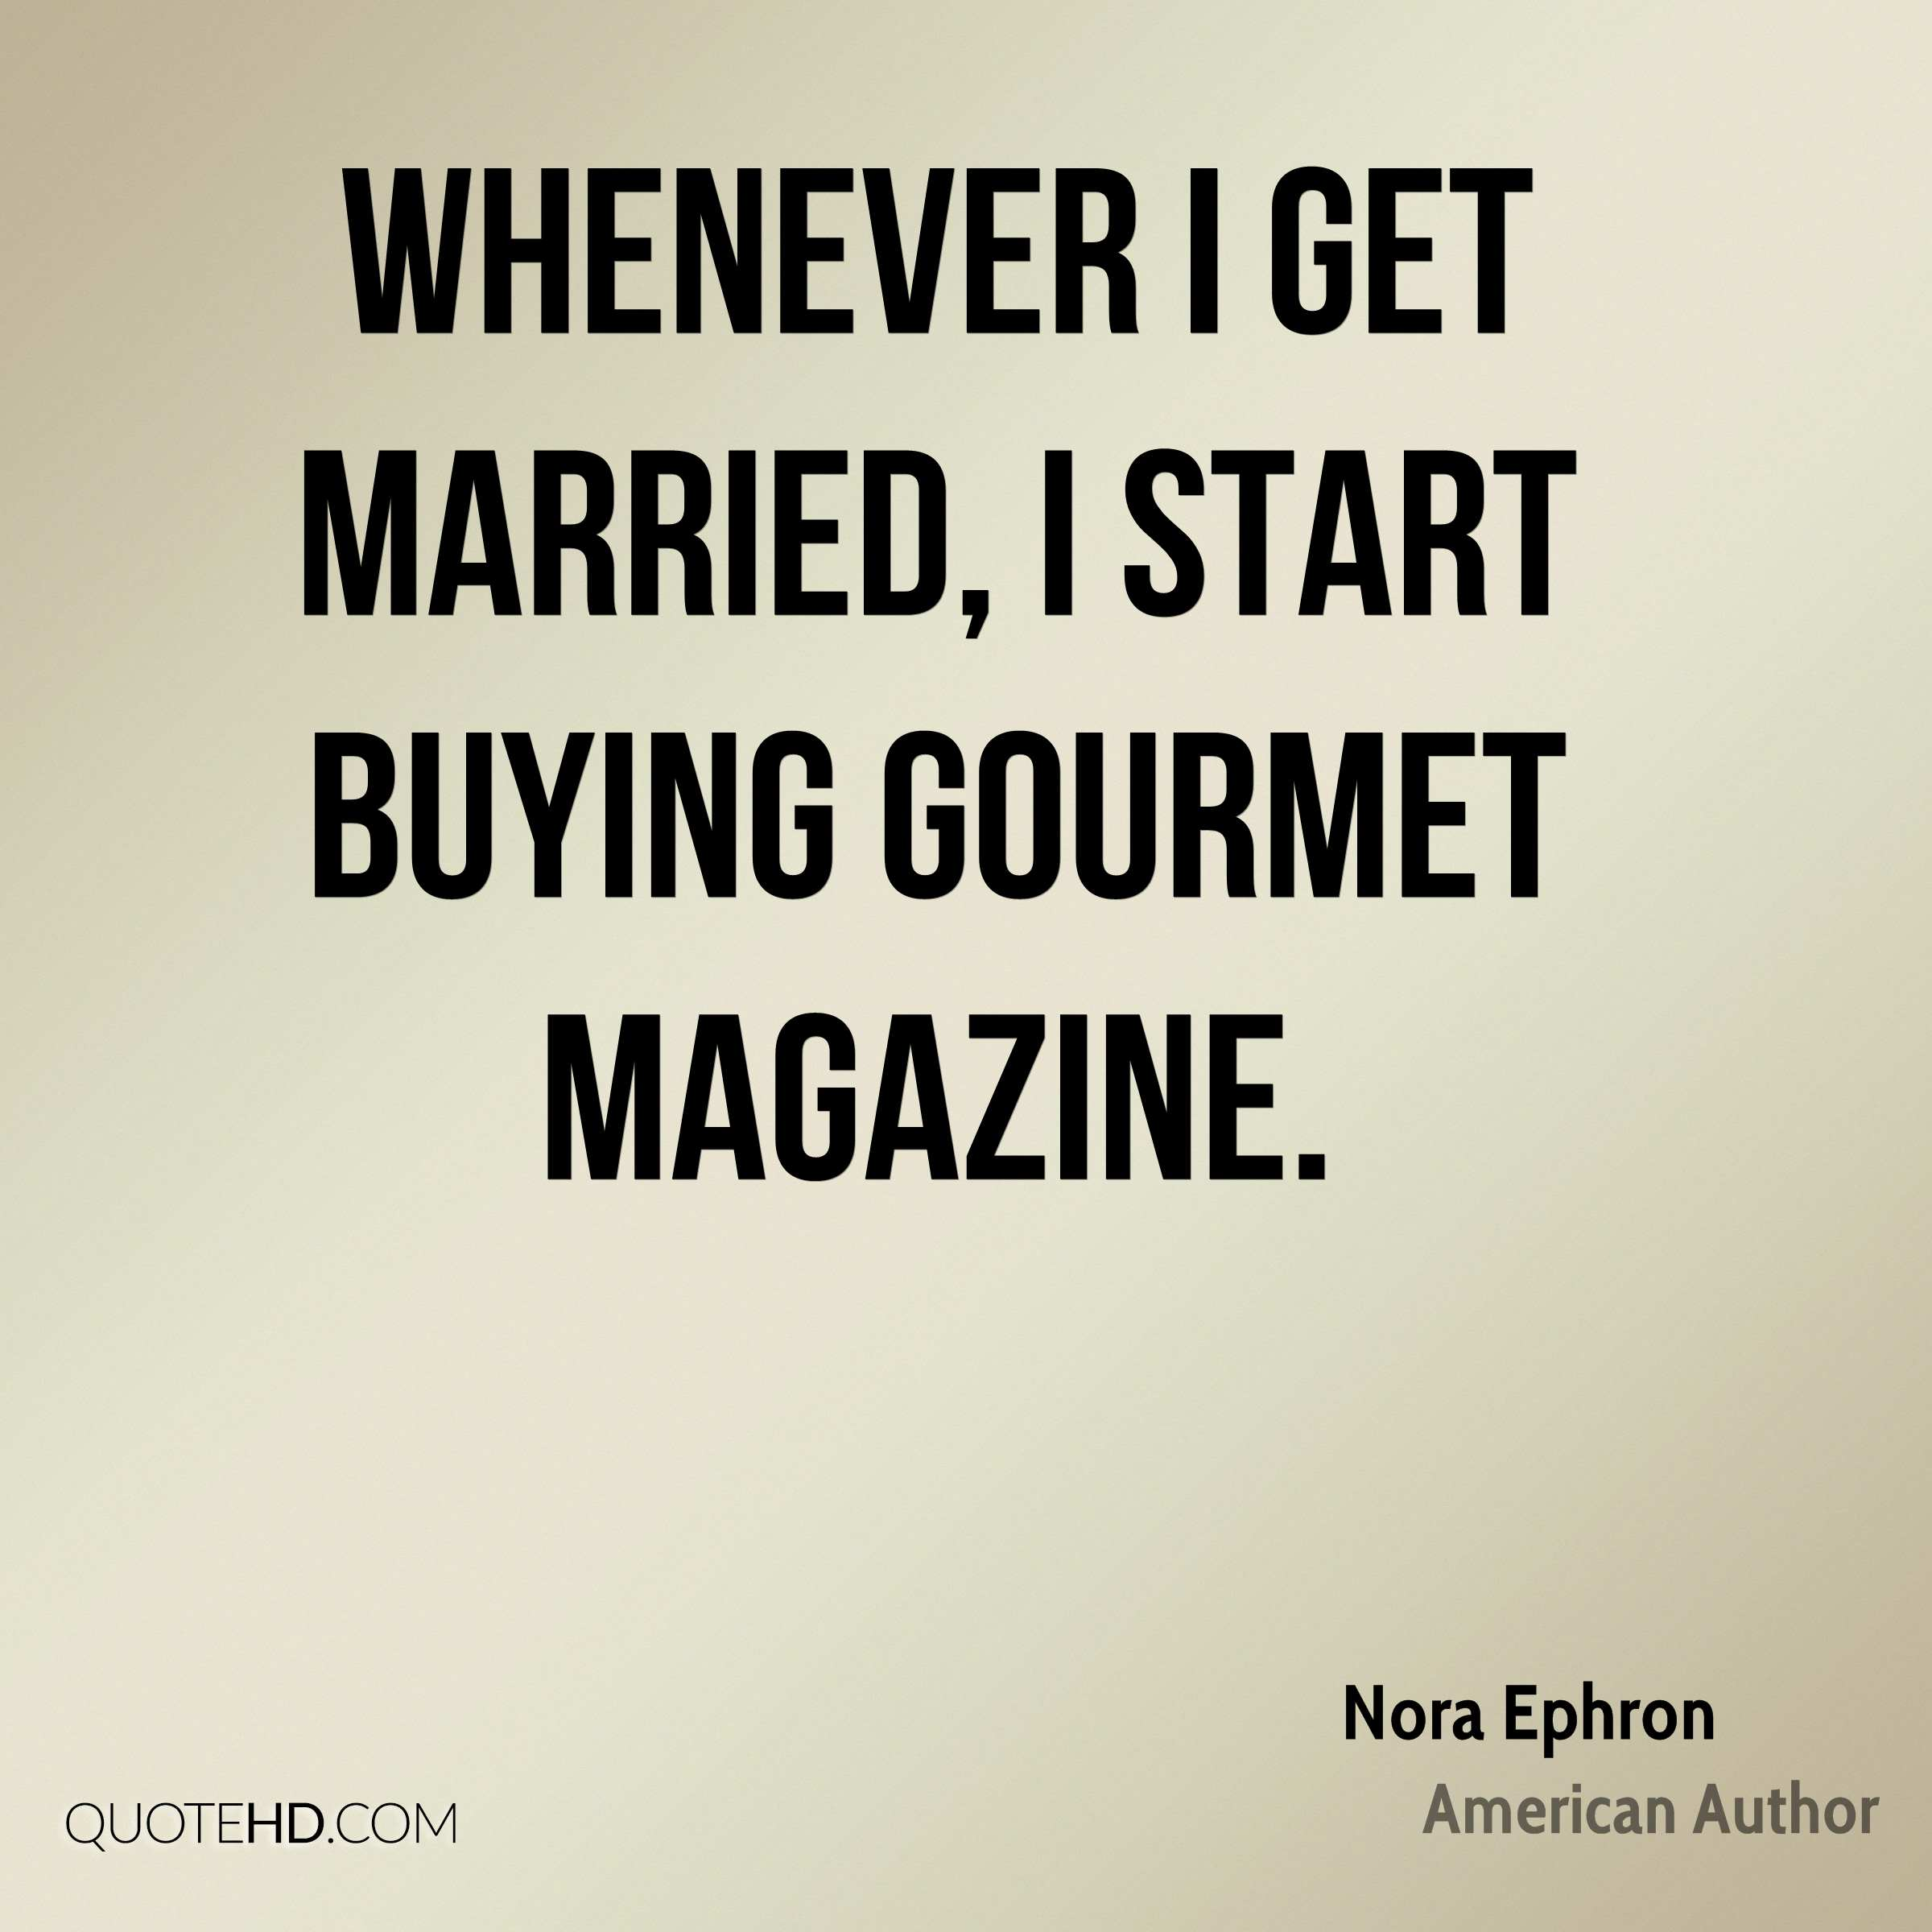 Magazine Quotes Nora Ephron Marriage Quotes  Quotehd